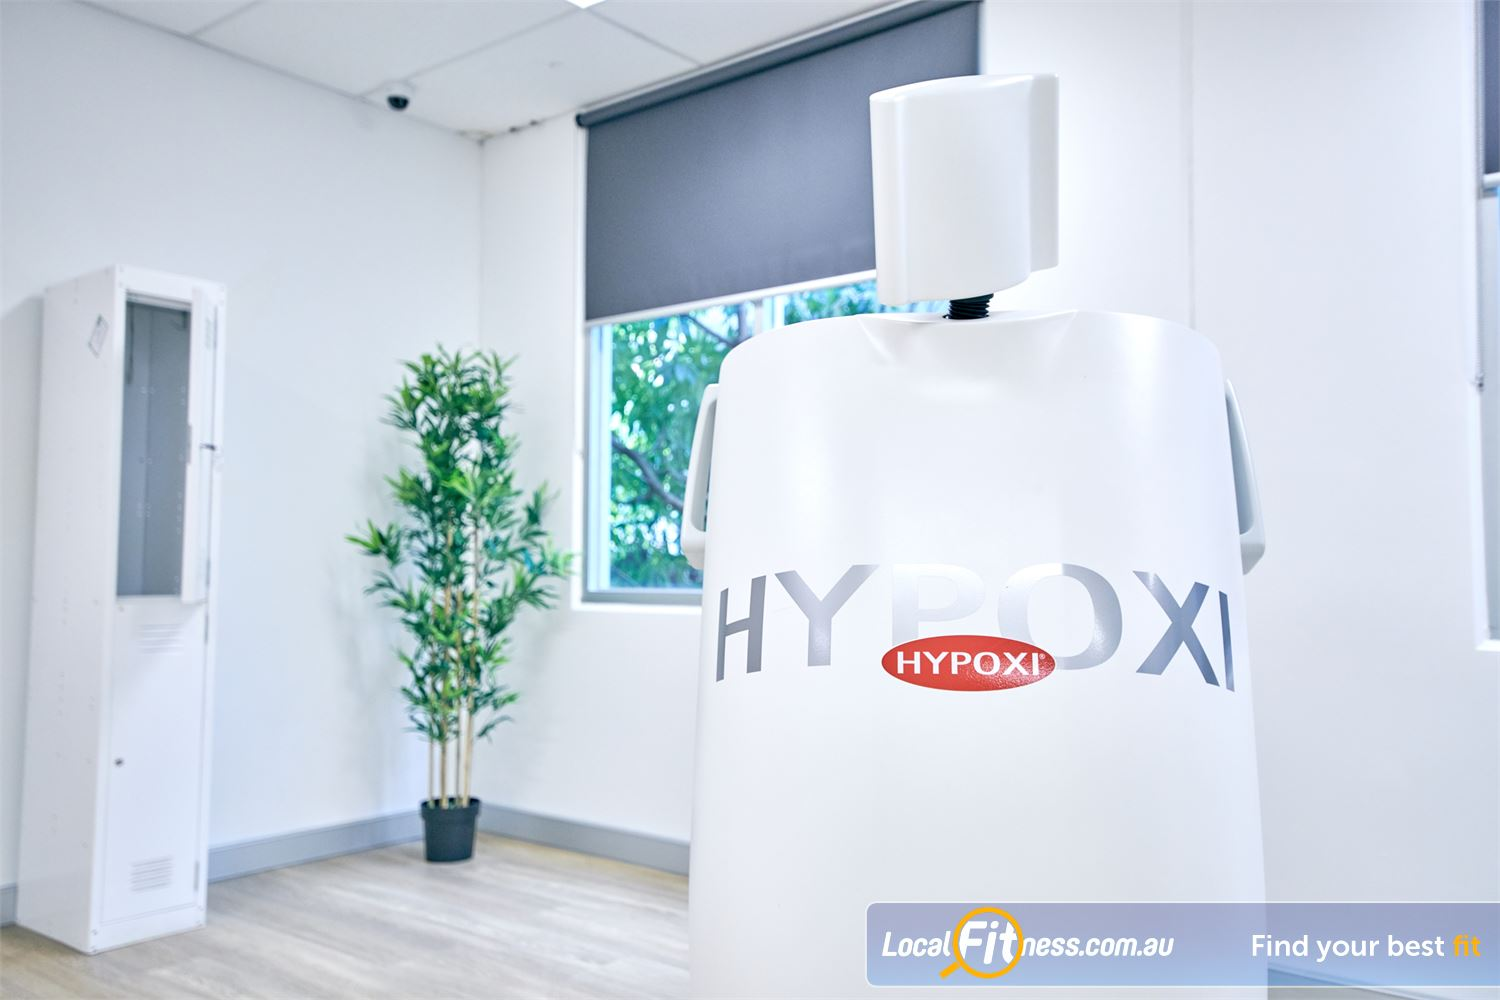 HYPOXI Weight Loss Near Moore Park Our advanced technology provides targeted fat loss in Waterloo.